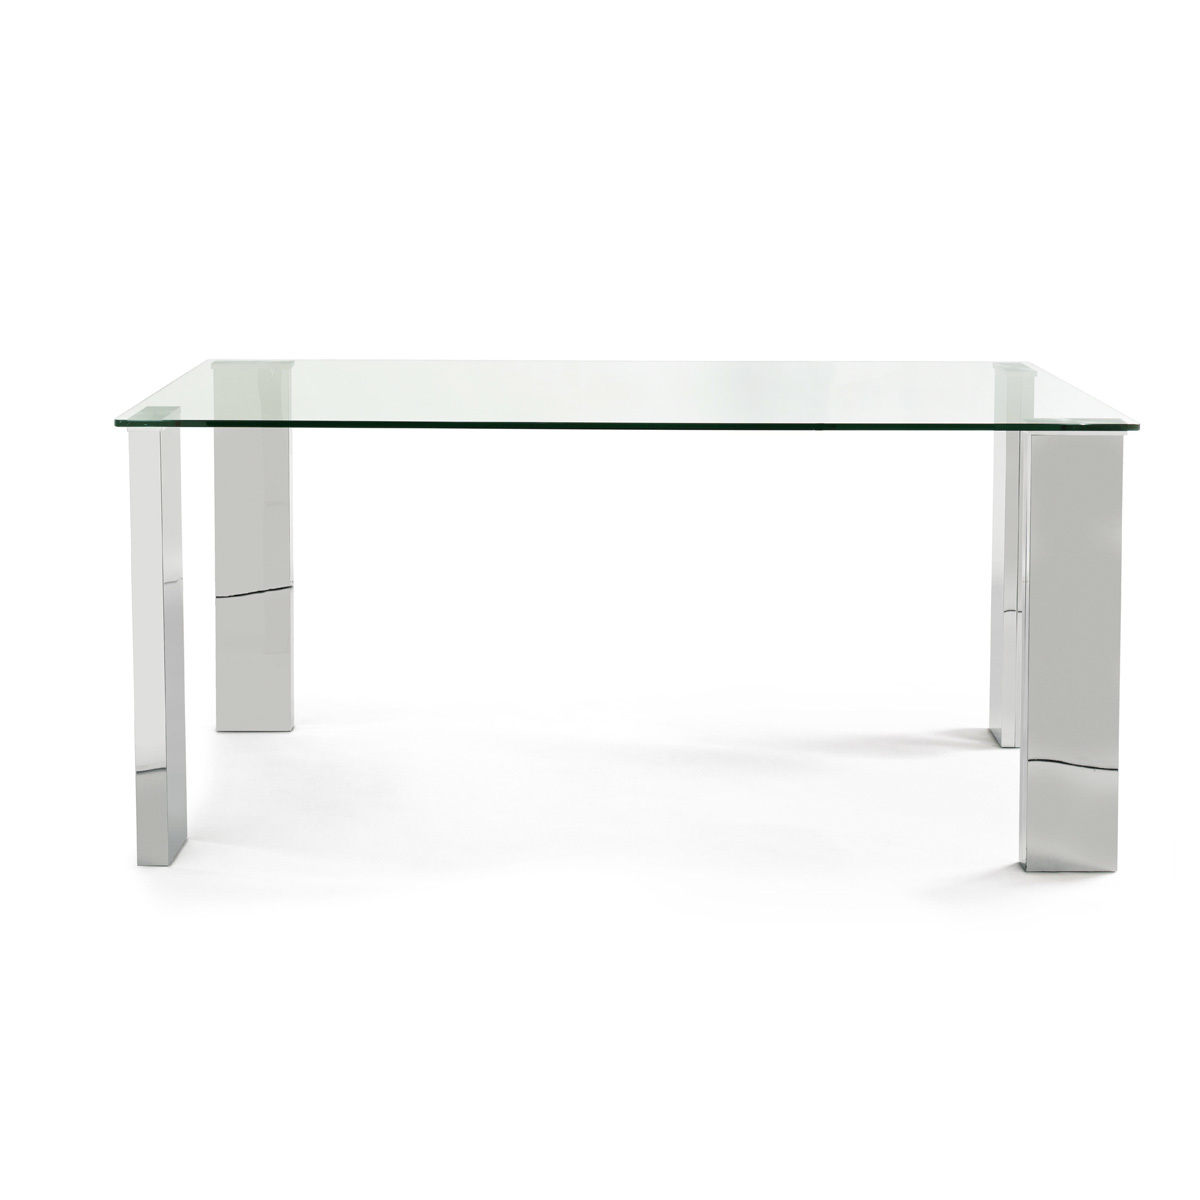 Photos 2: Bizzotto Fixed rectangular table l. 160 x 90 0732136